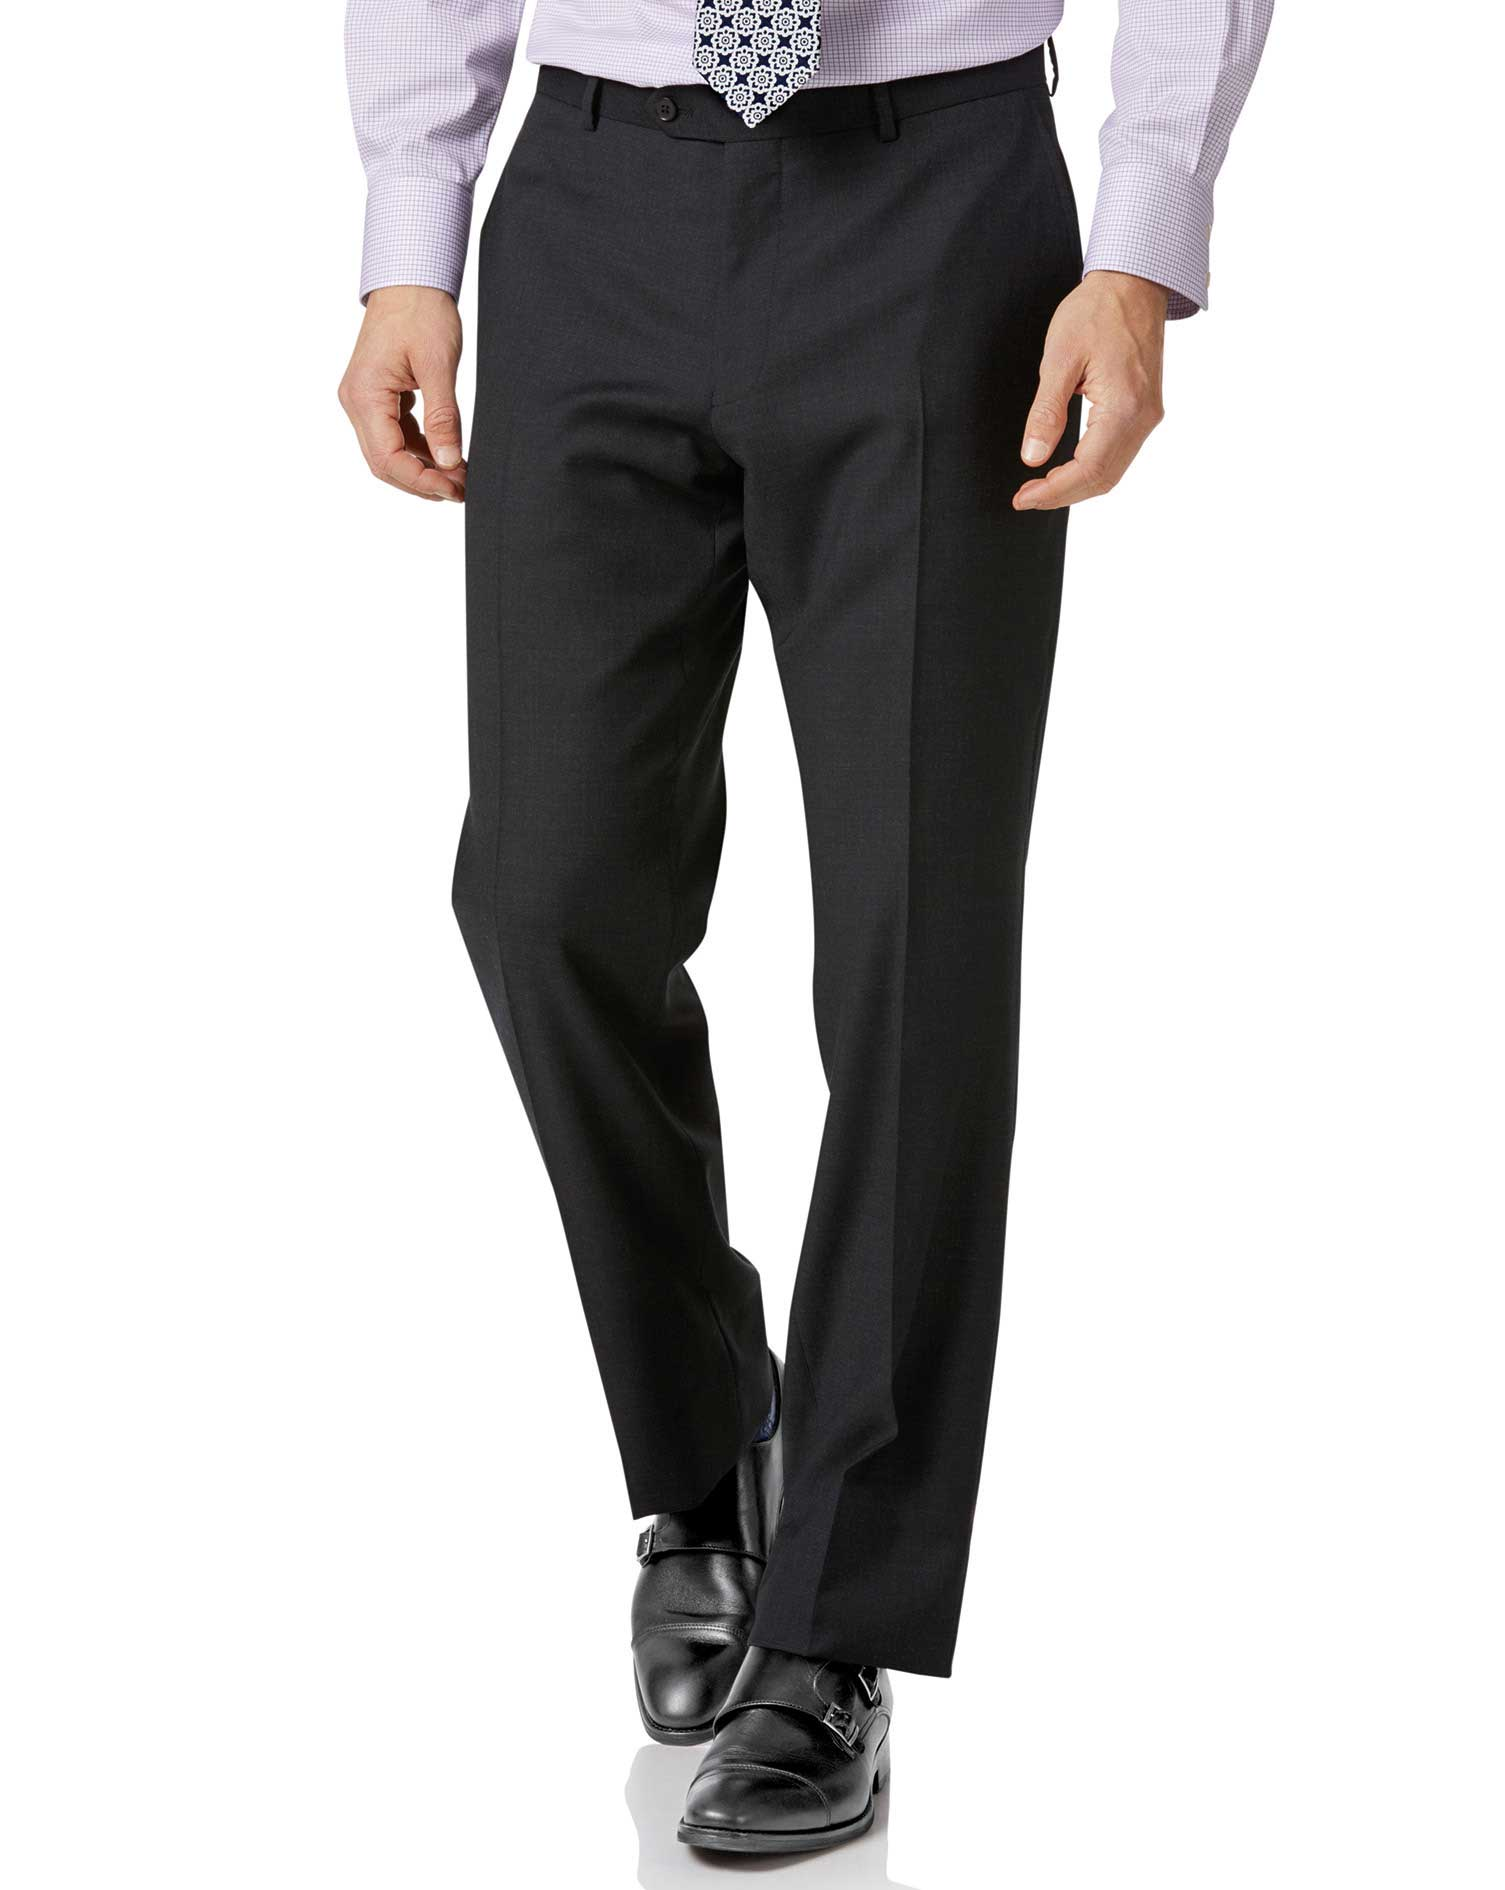 Charcoal Classic Fit Twill Business Suit Trousers Size W42 L34 by Charles Tyrwhitt